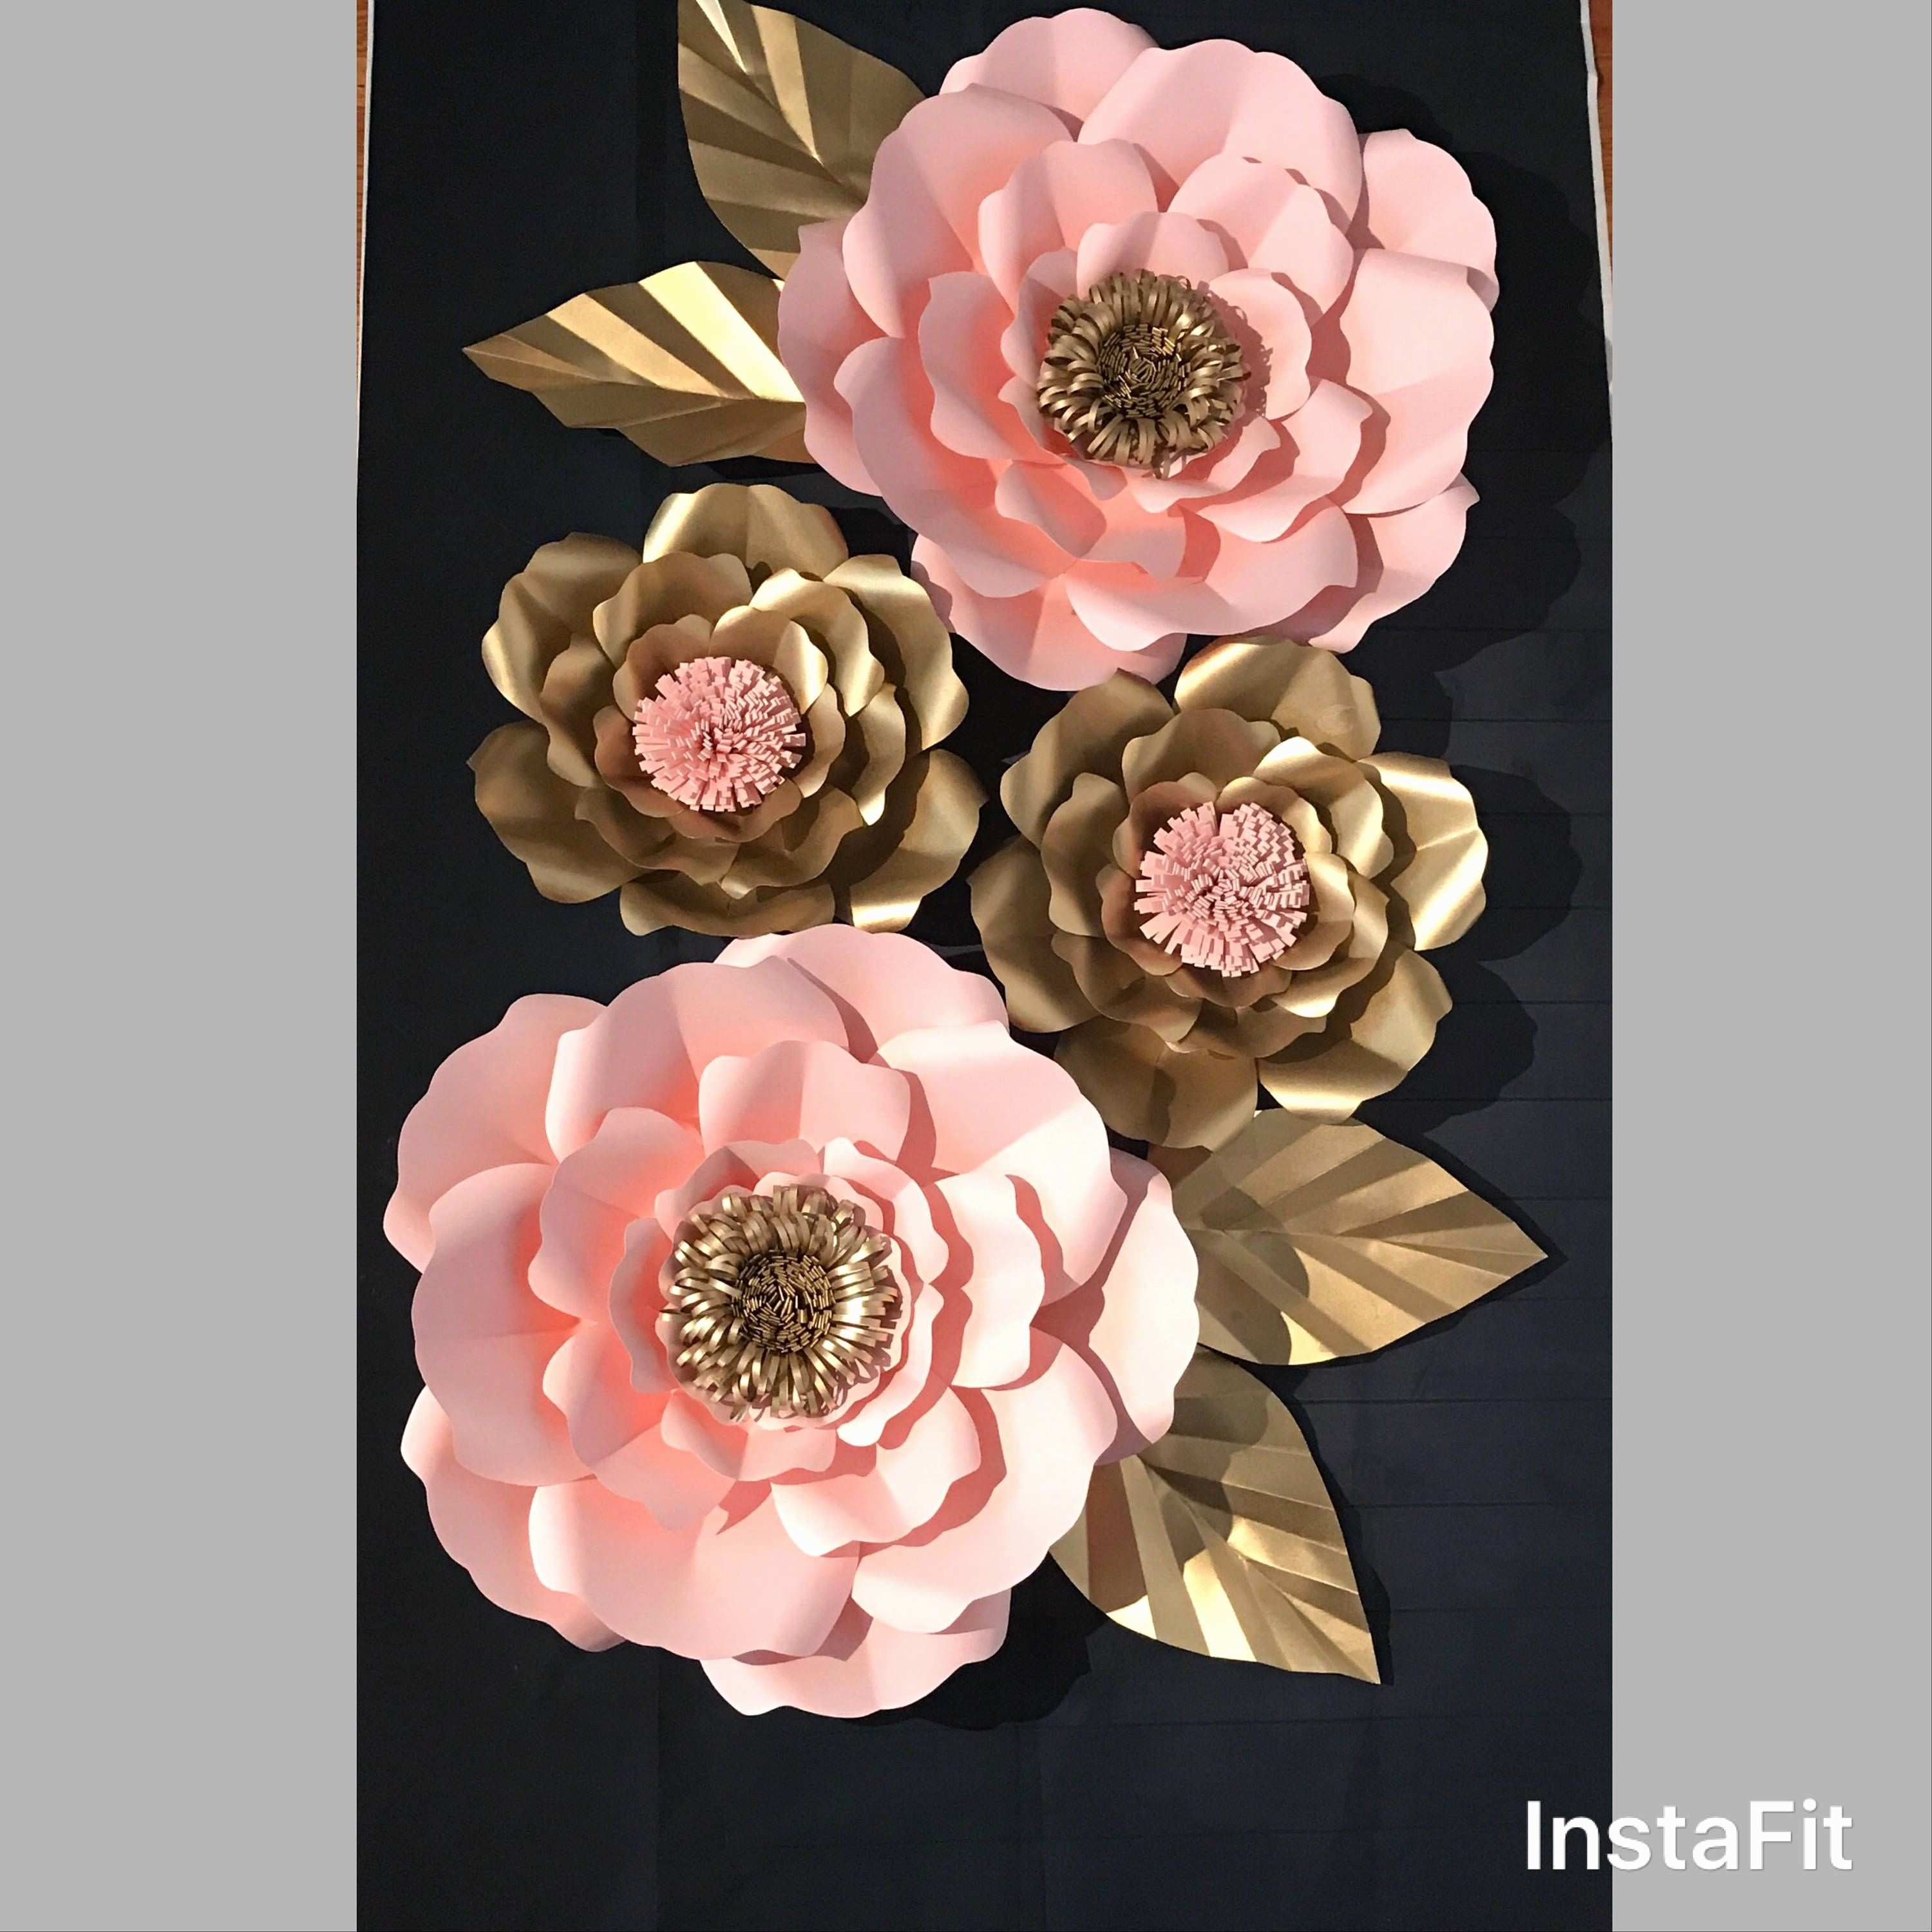 Floral Decor for Home Beautiful Decor Floral Decor Floral Decor 0d